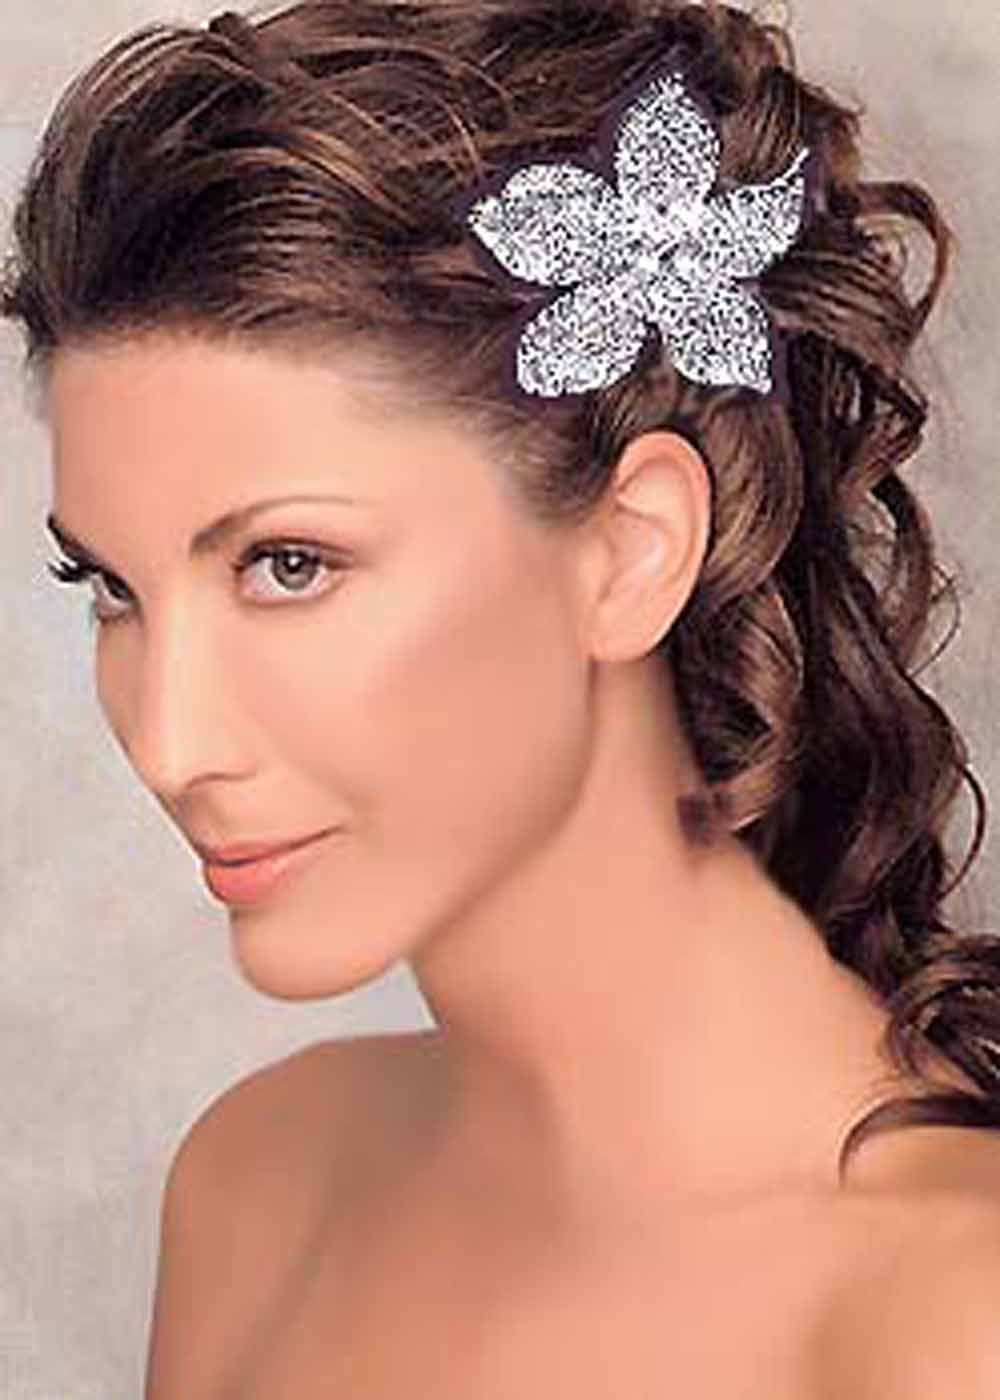 Hair accessories for updos hairstyles - Wedding Updos For Long Hair Bridal Hairstyles 2011 Modern Bridal Hair Style